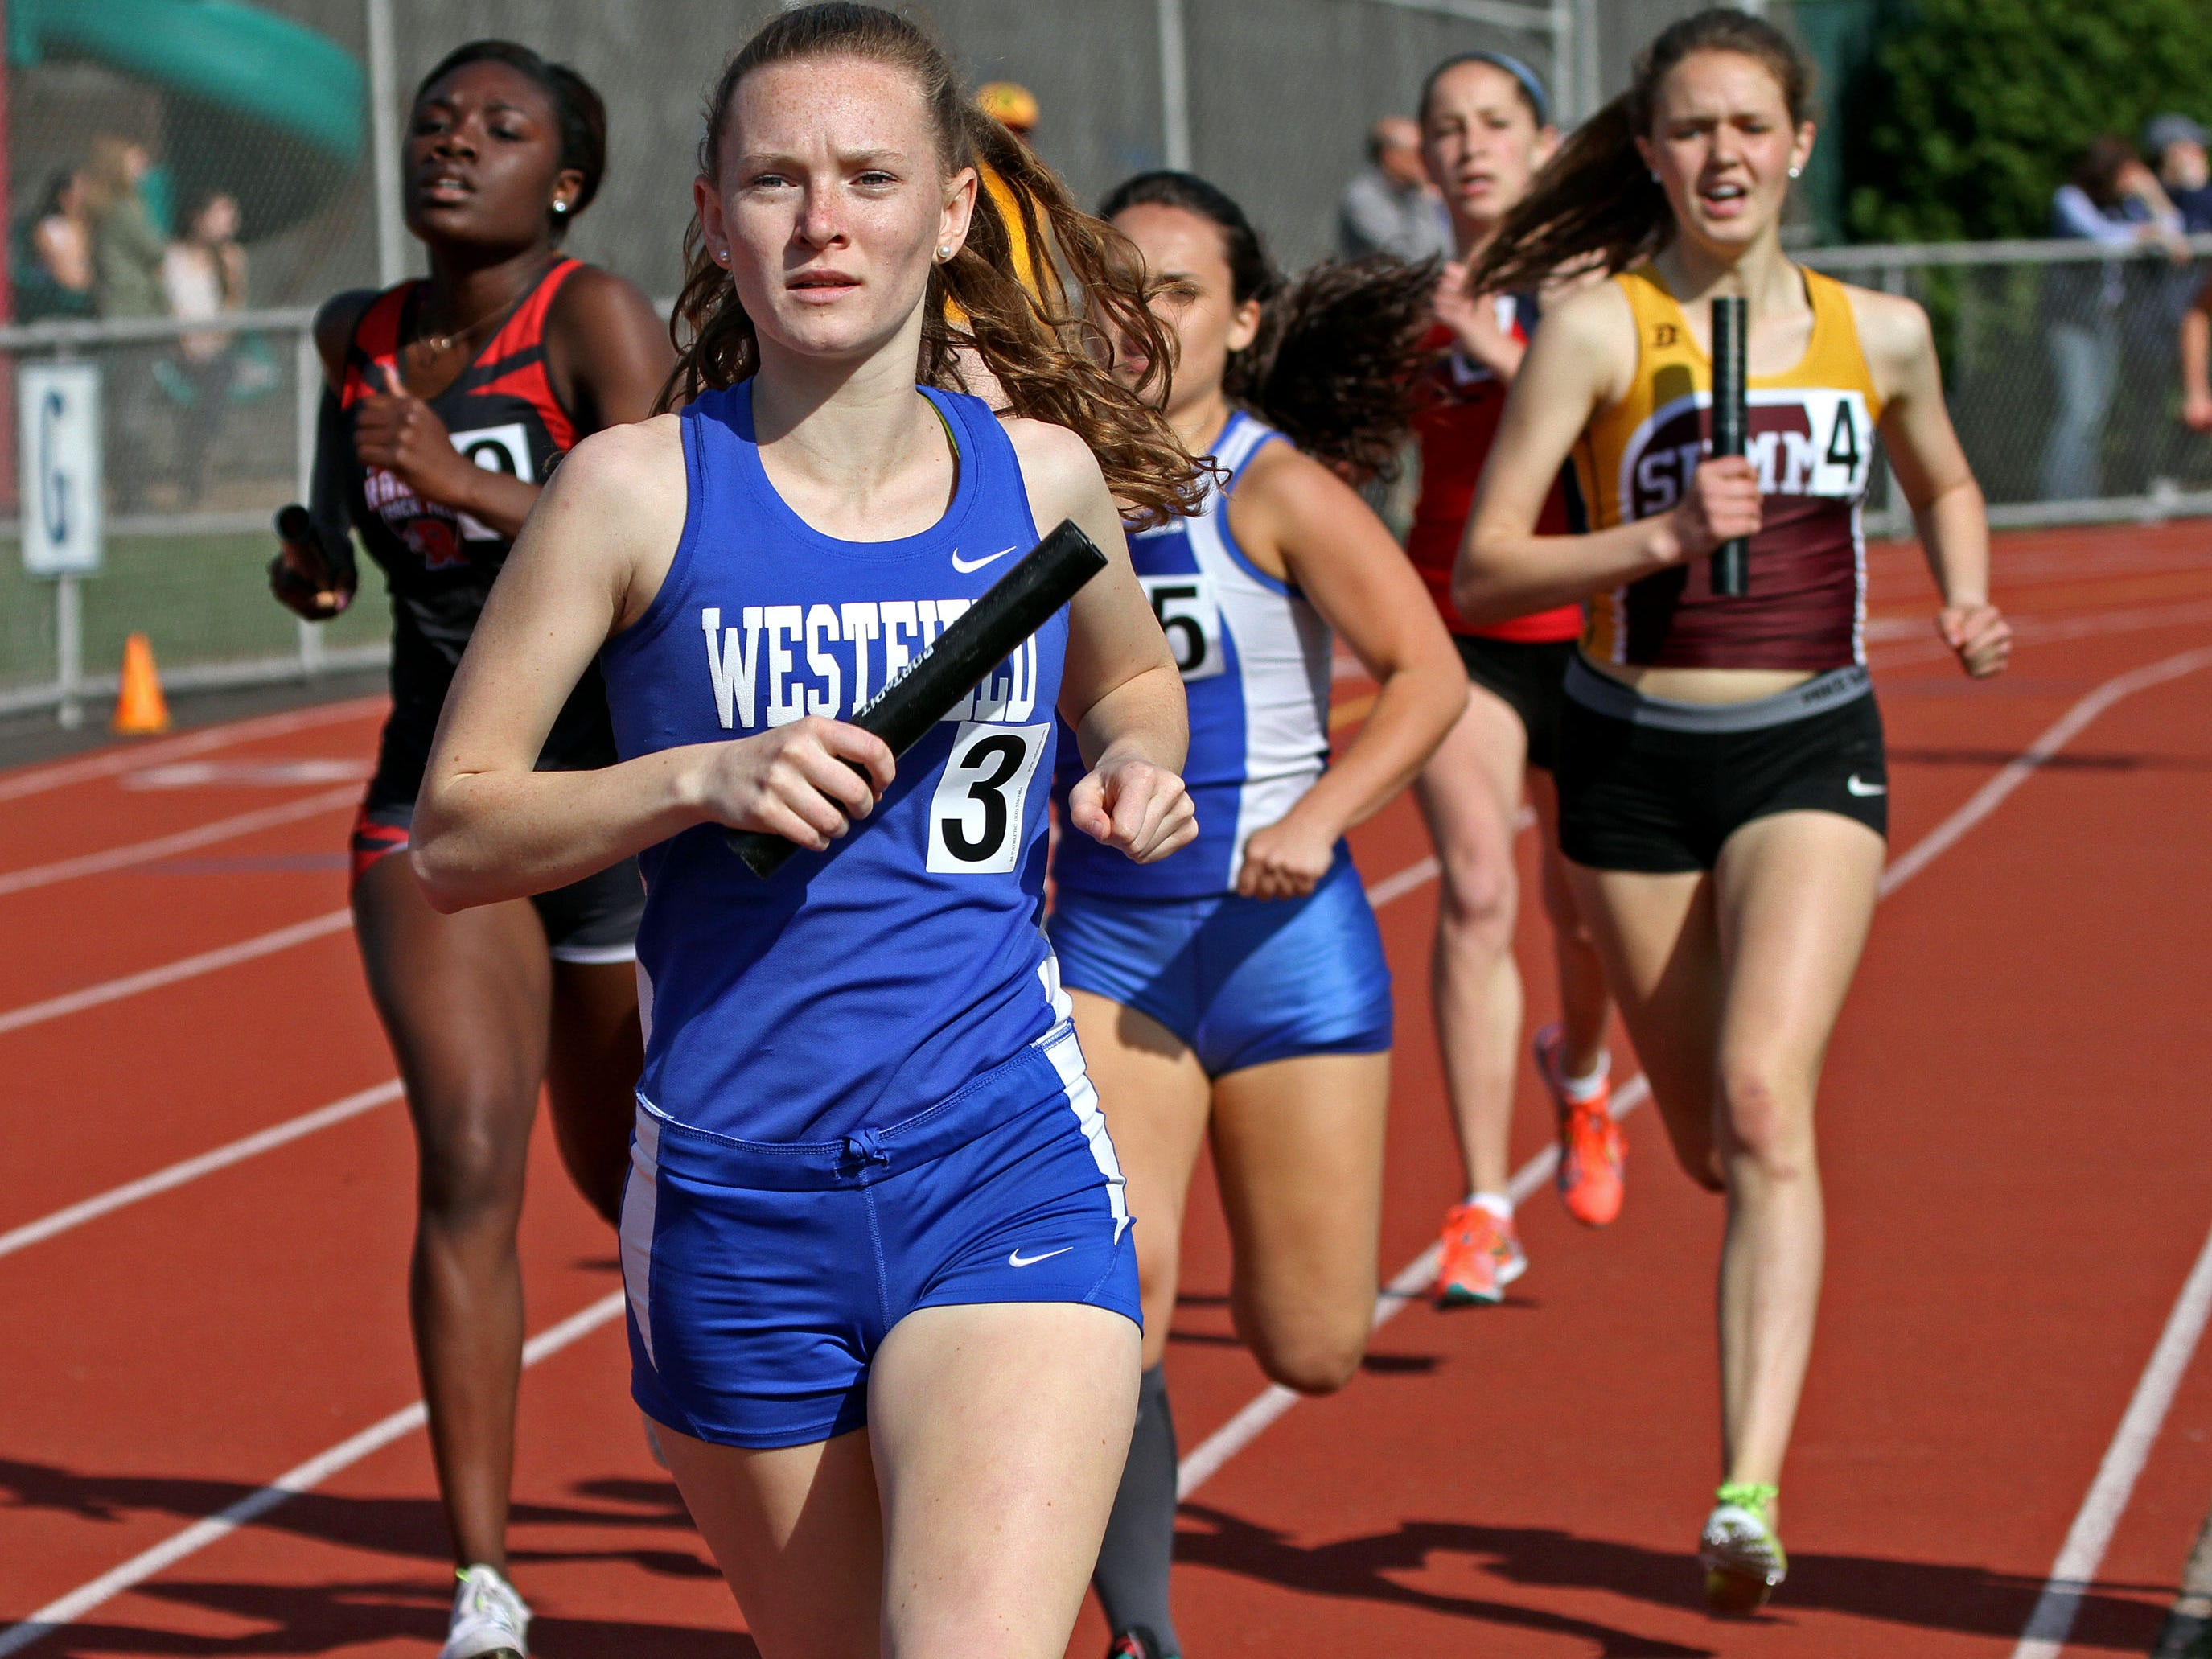 Westfield's Julia Myers runs the first leg of the girls 4x800. This is action of the Union County Track and Field Relays.